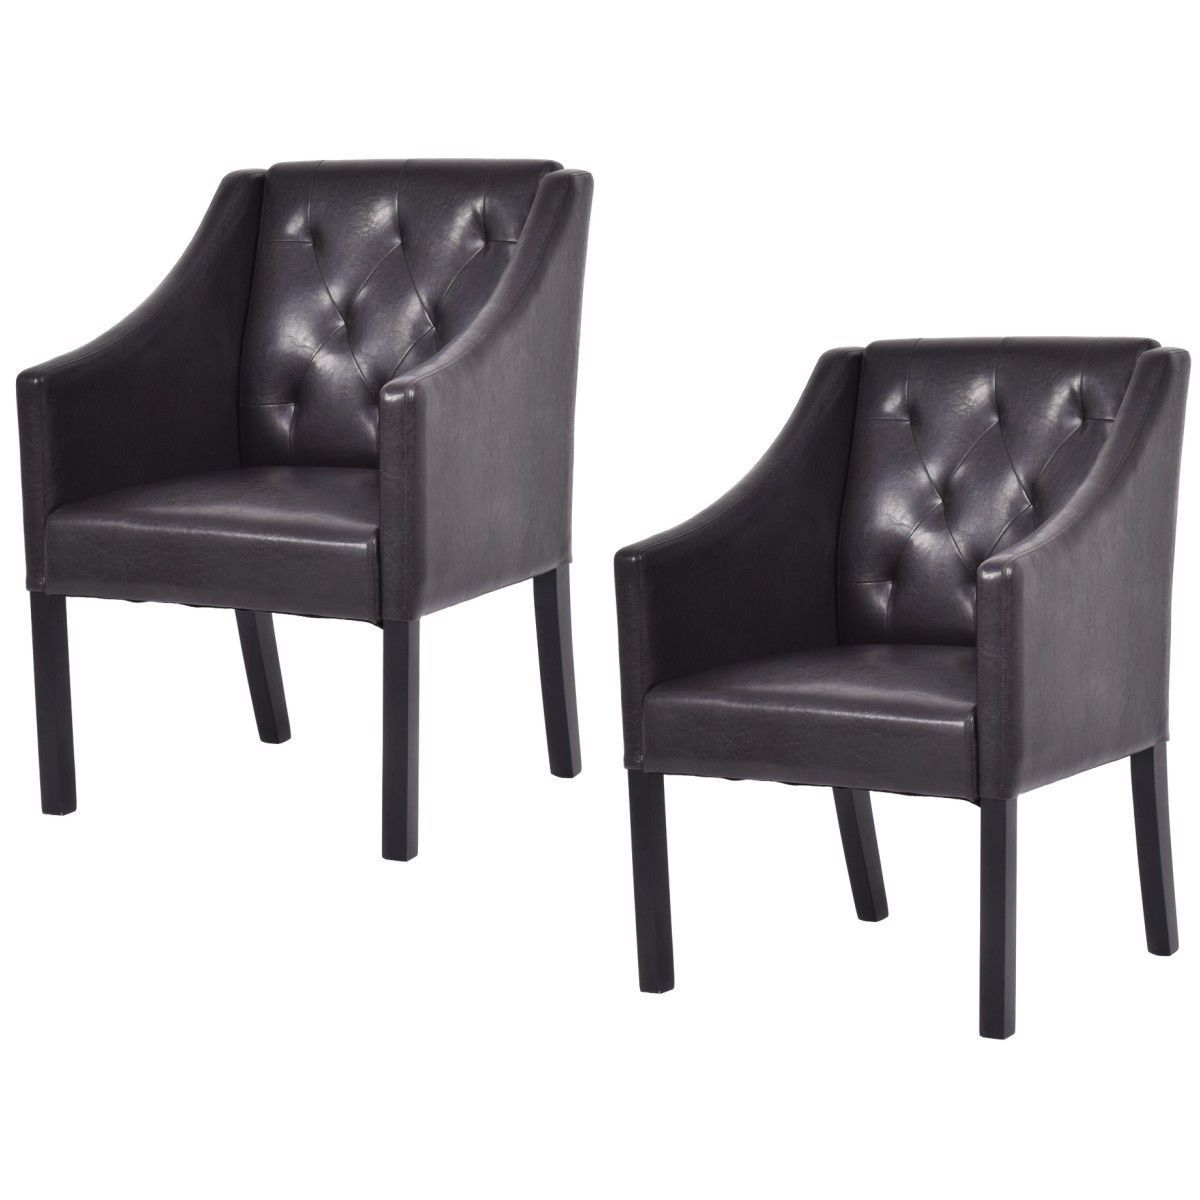 Costway Set Of 2 Accent Arm Chair PU Leather Tufted Leisure Living Room  Furniture